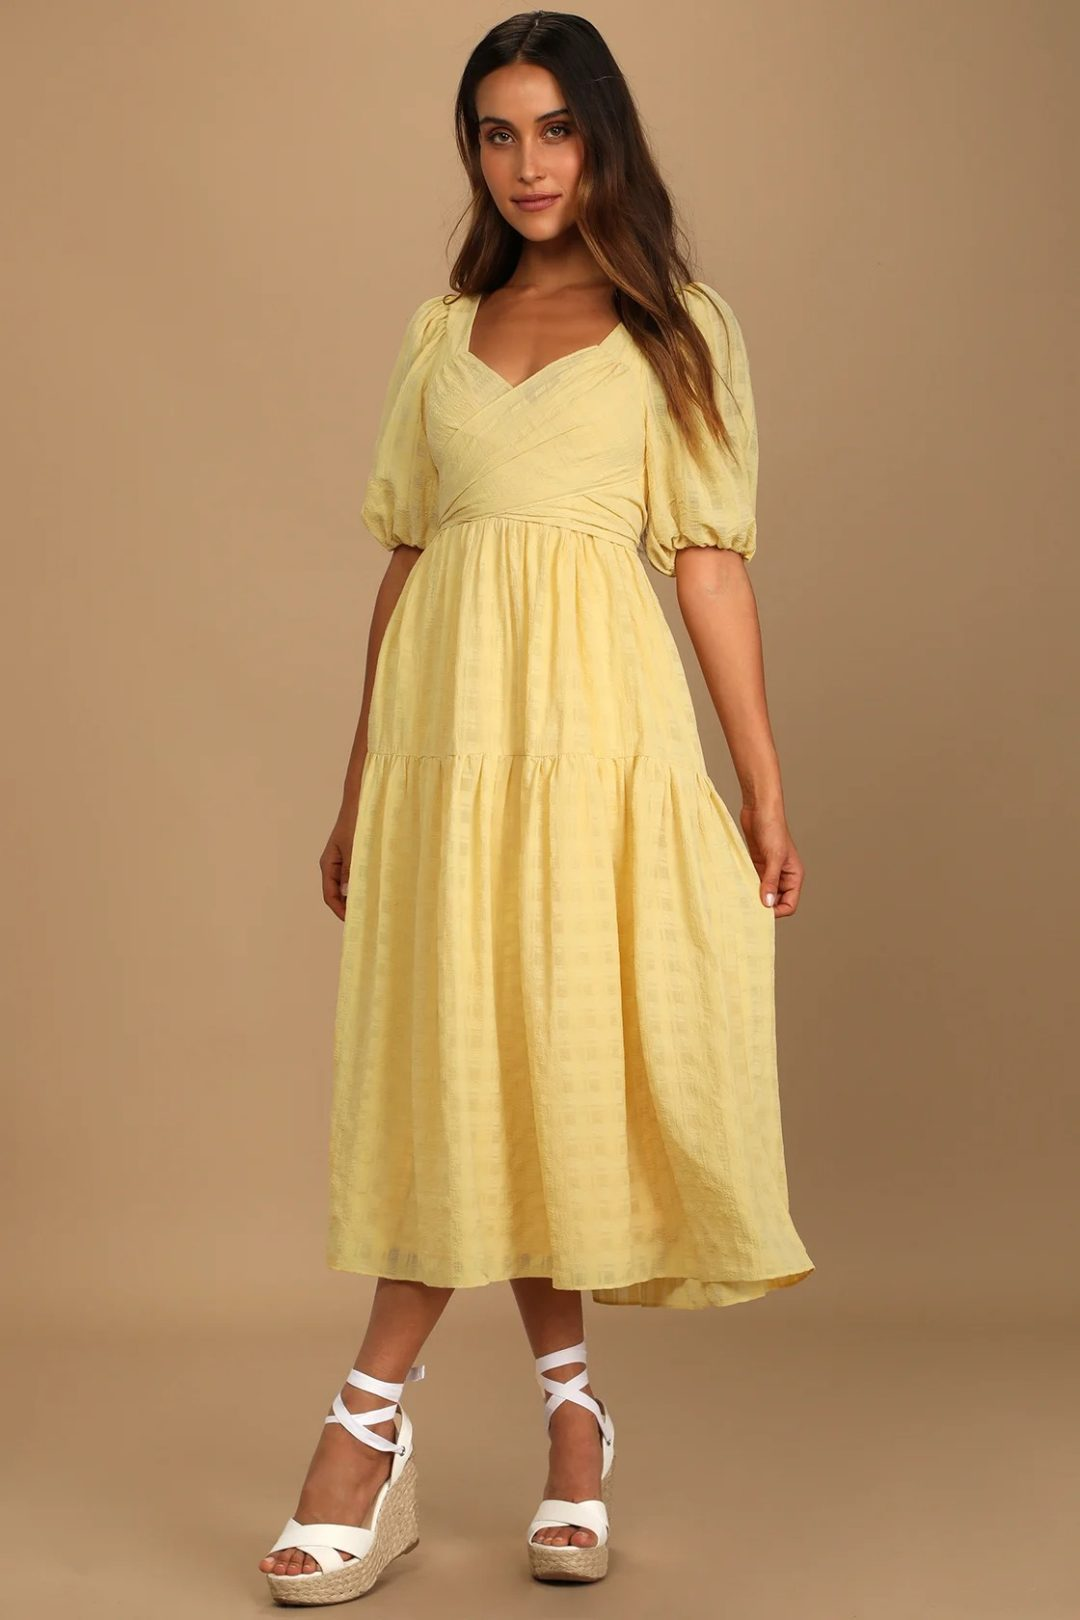 What To Wear To A Celebration Of Life: Yellow puff sleeve maxi dress